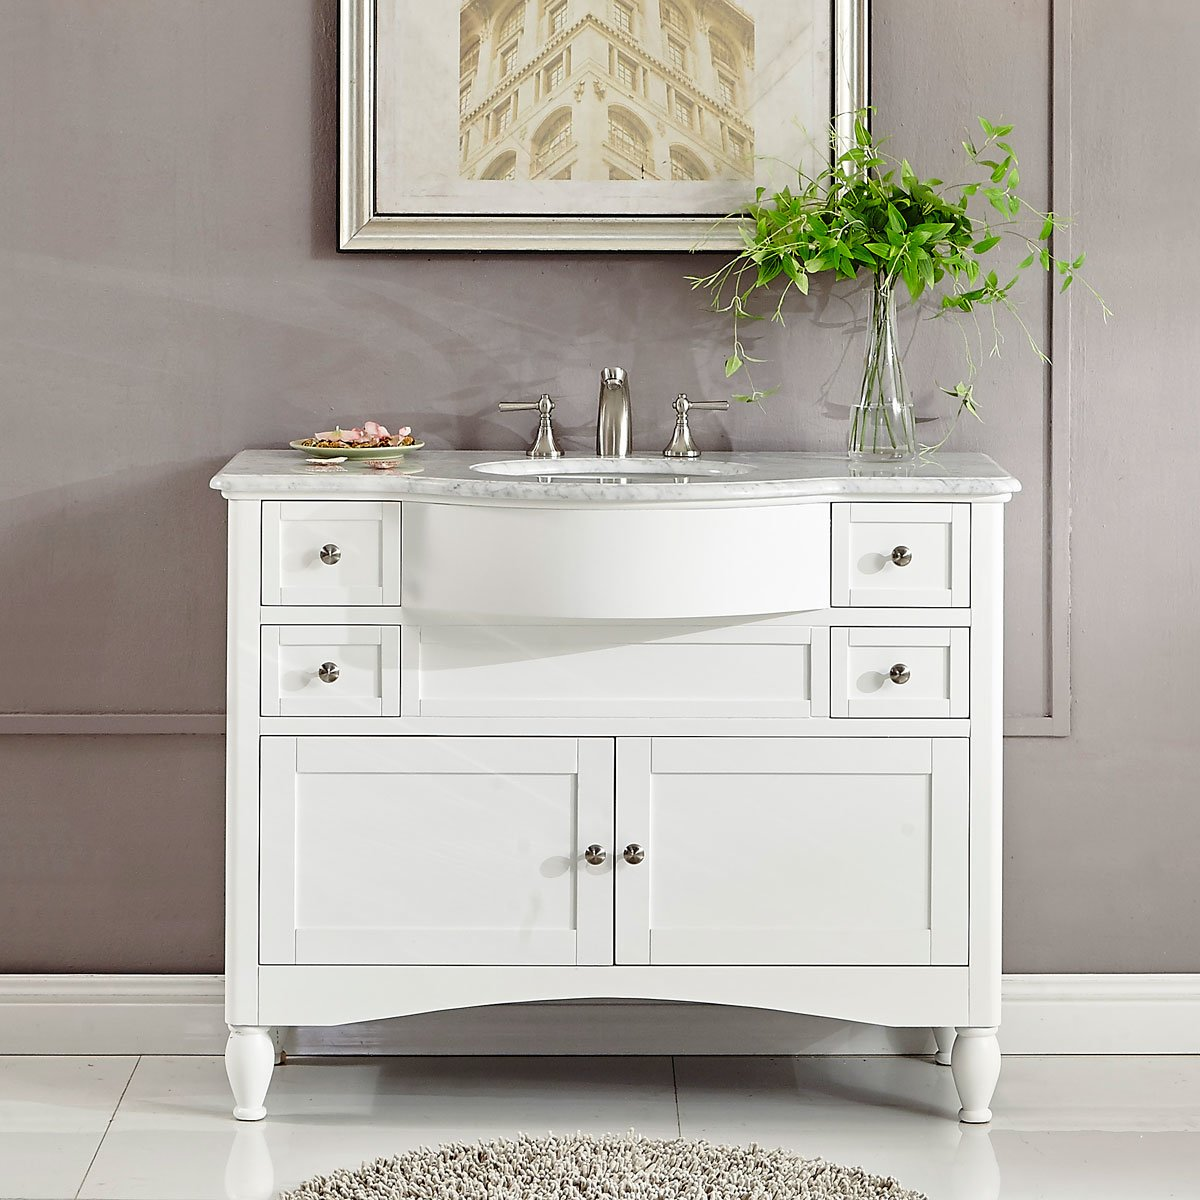 45 inch Single Sink Contemporary White Bathroom Vanity Carrara Marble Top